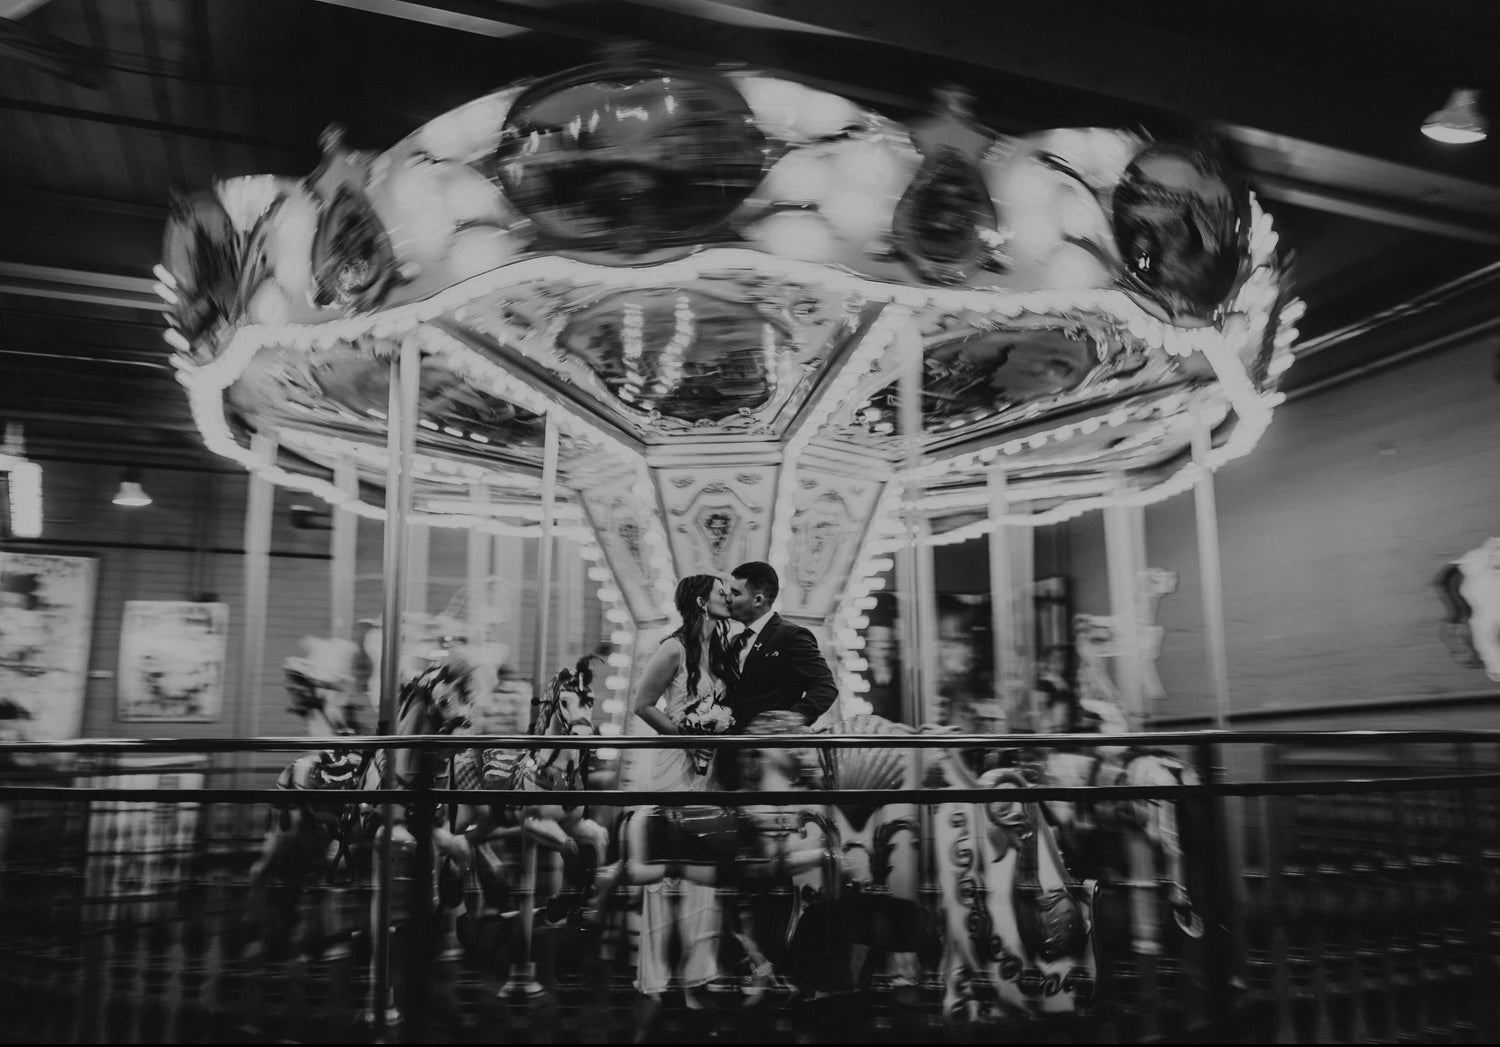 Black and white unique wedding photo of the carnival carousel in motion as the couple pose in front of them